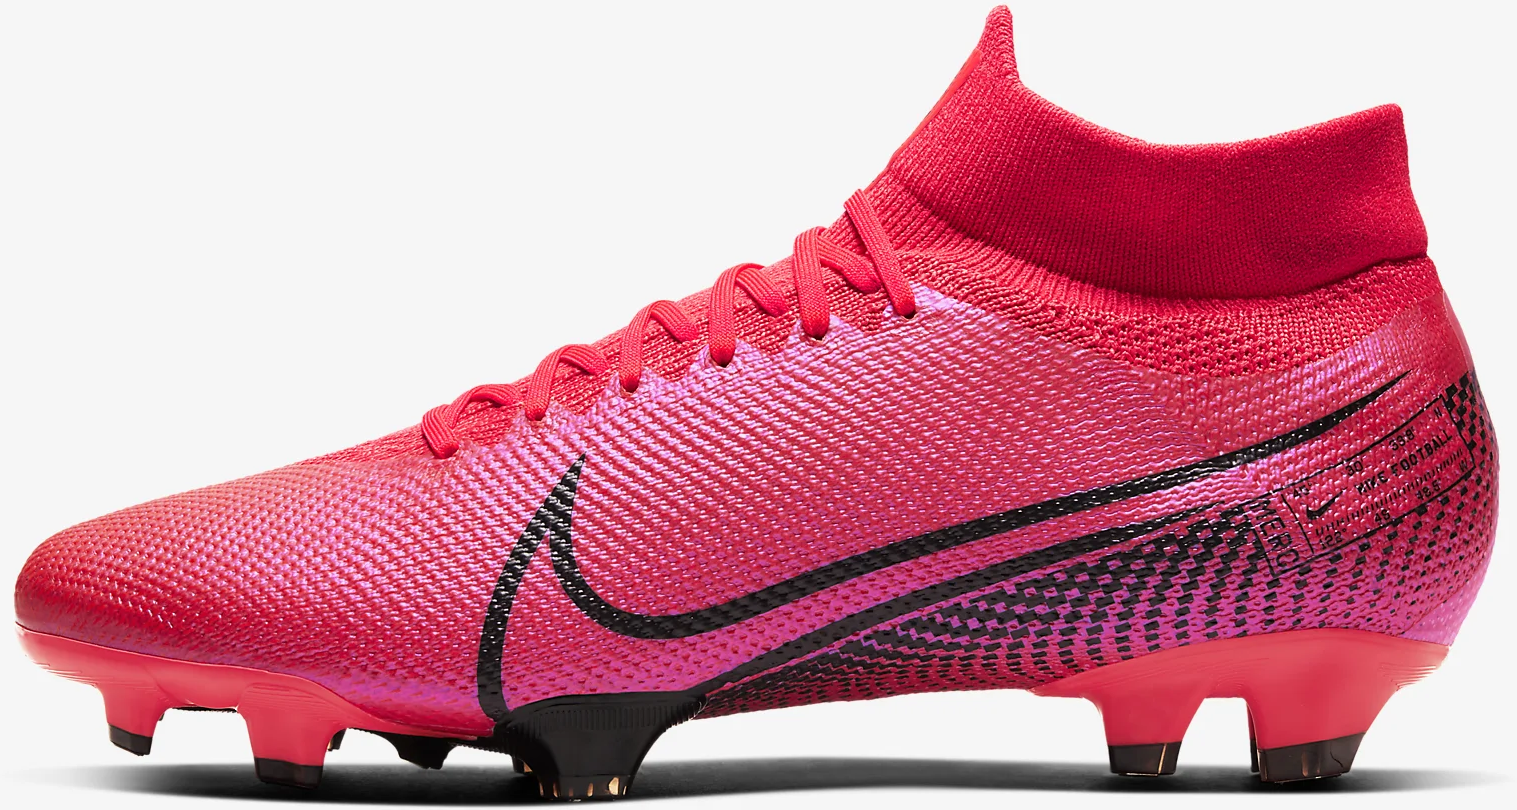 Nike Mercurial Superfly 7 Pro Fg Soccer Cleats From Nike For 2020 In 2020 Soccer Cleats Cleats Shoe Boots